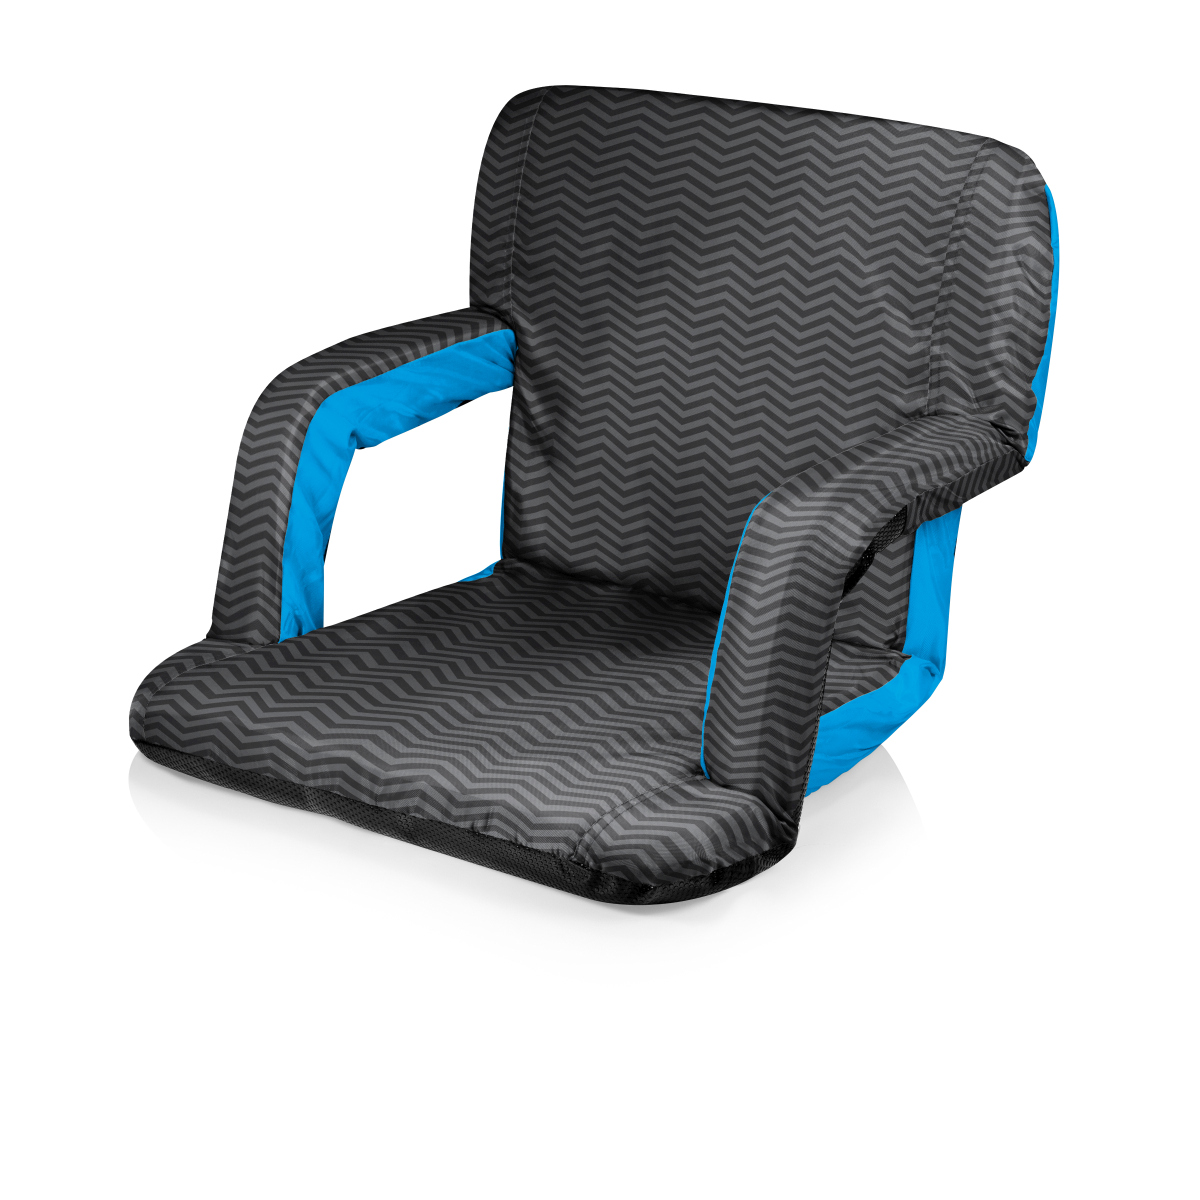 809_pt-ventura-seat-portable-recliner-chair-by-picnic-time